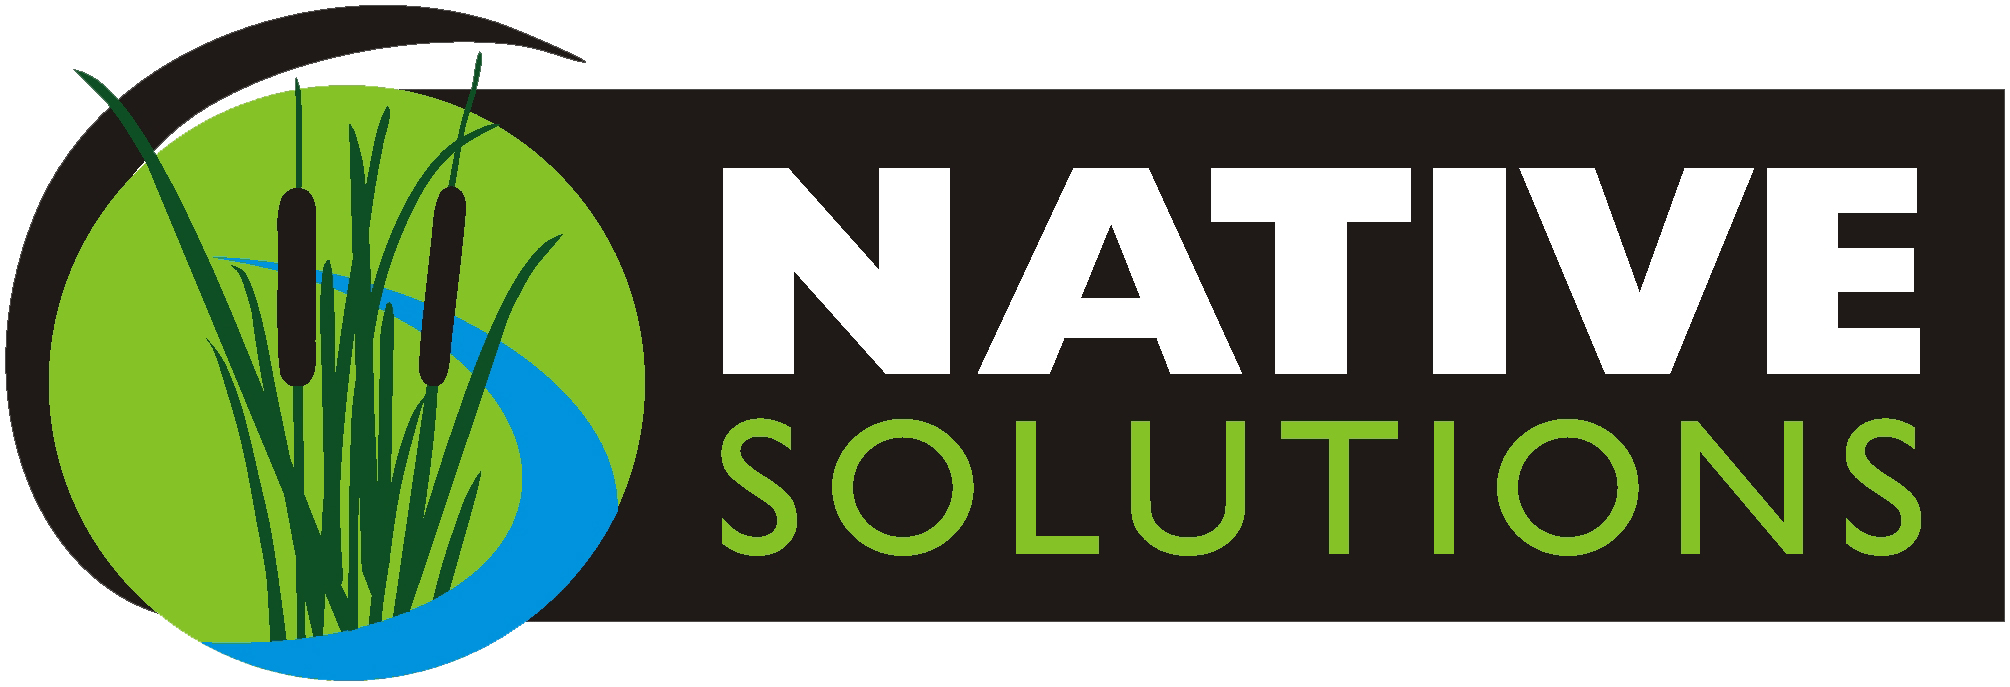 Native Solutions Ltd